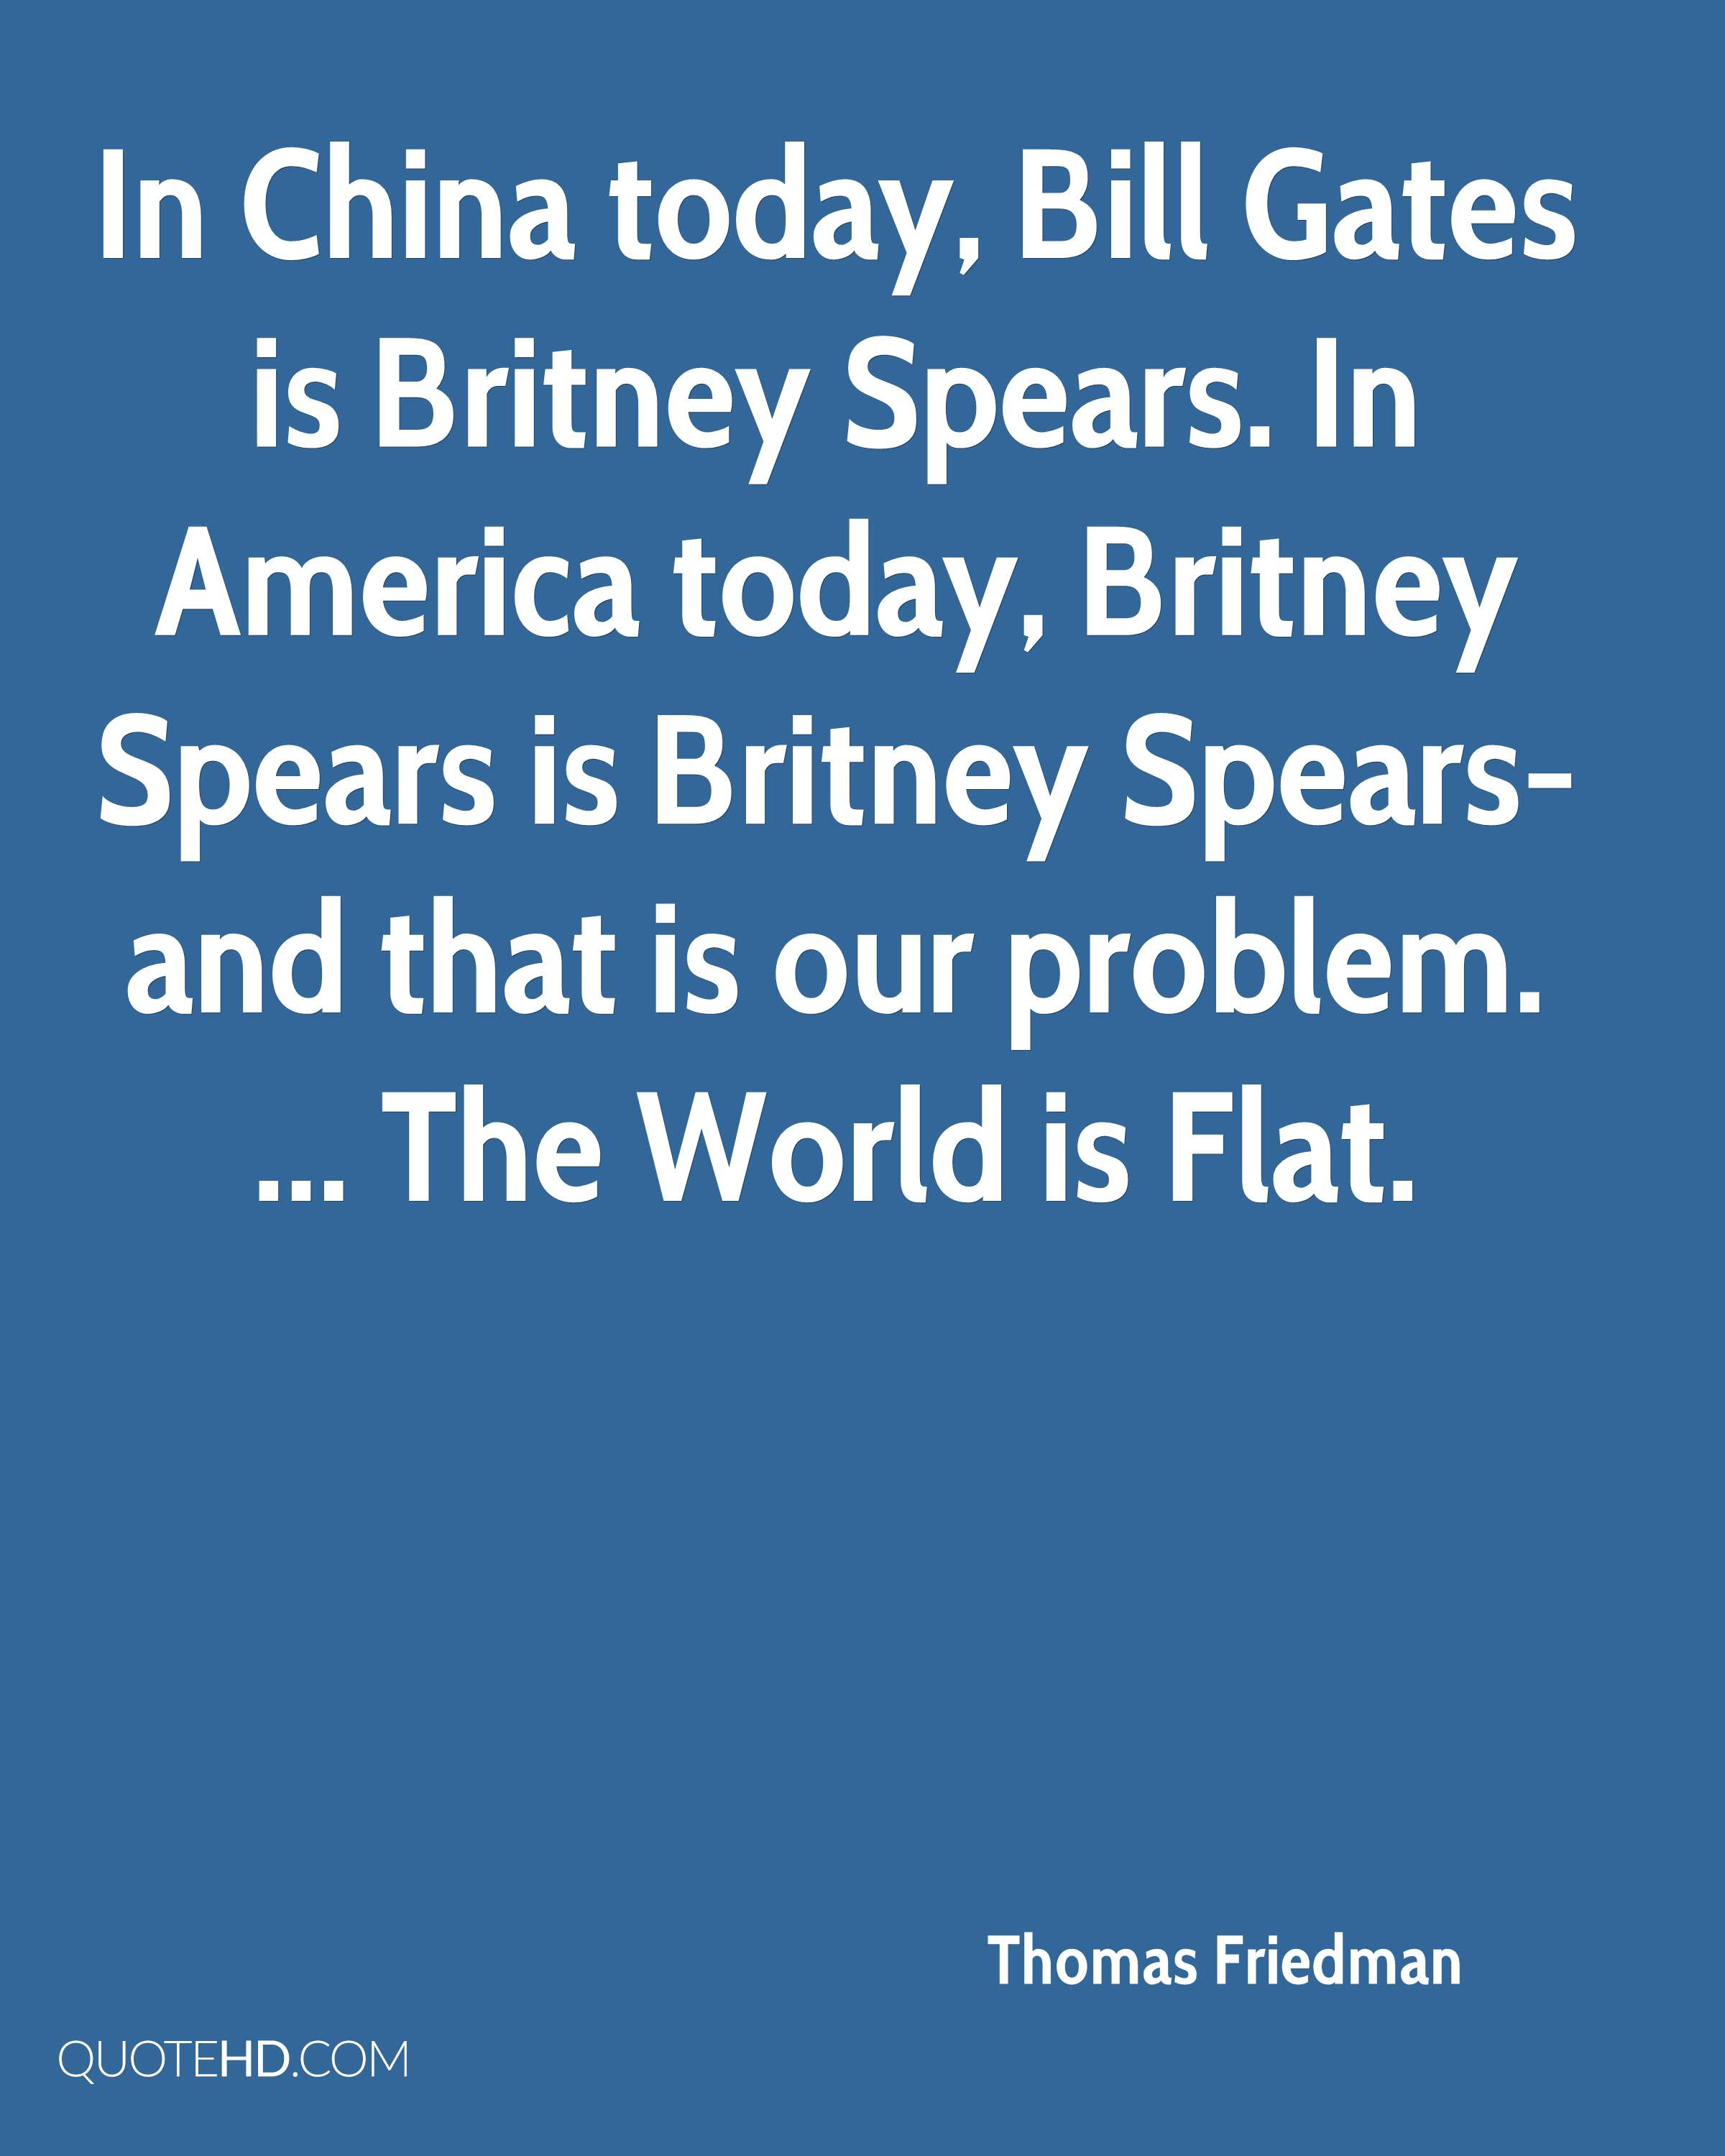 In China today, Bill Gates is Britney Spears. In America today, Britney Spears is Britney Spears-and that is our problem. ... The World is Flat.